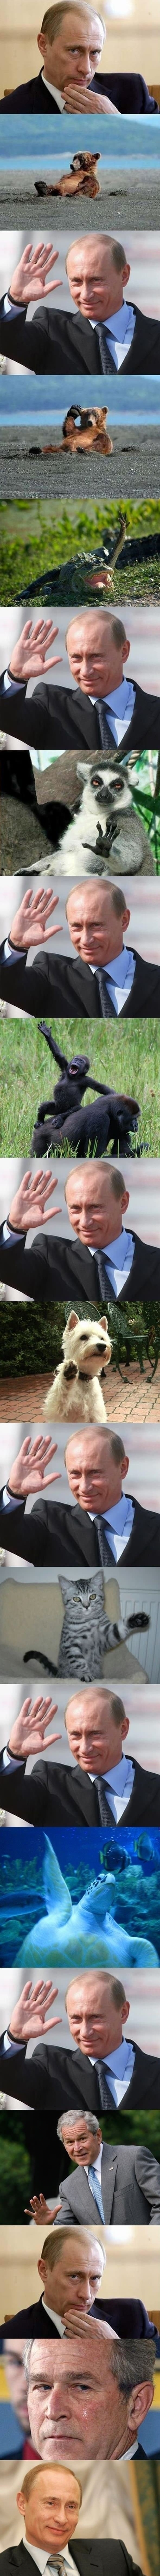 Friendly Putin